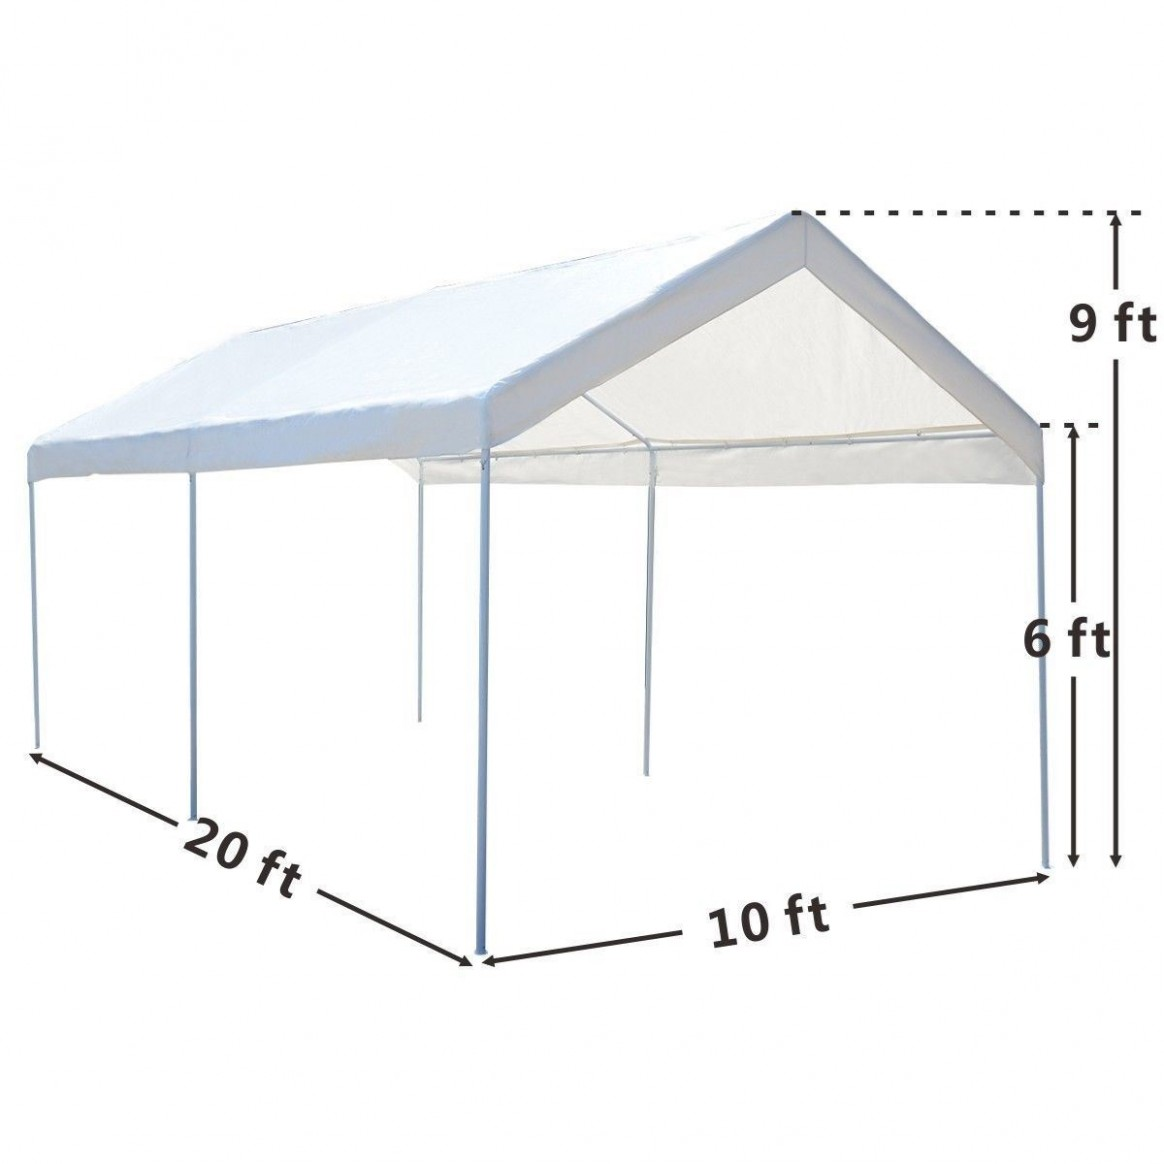 Here's What People Are Saying About Portable Carport Frame | portable carport frame